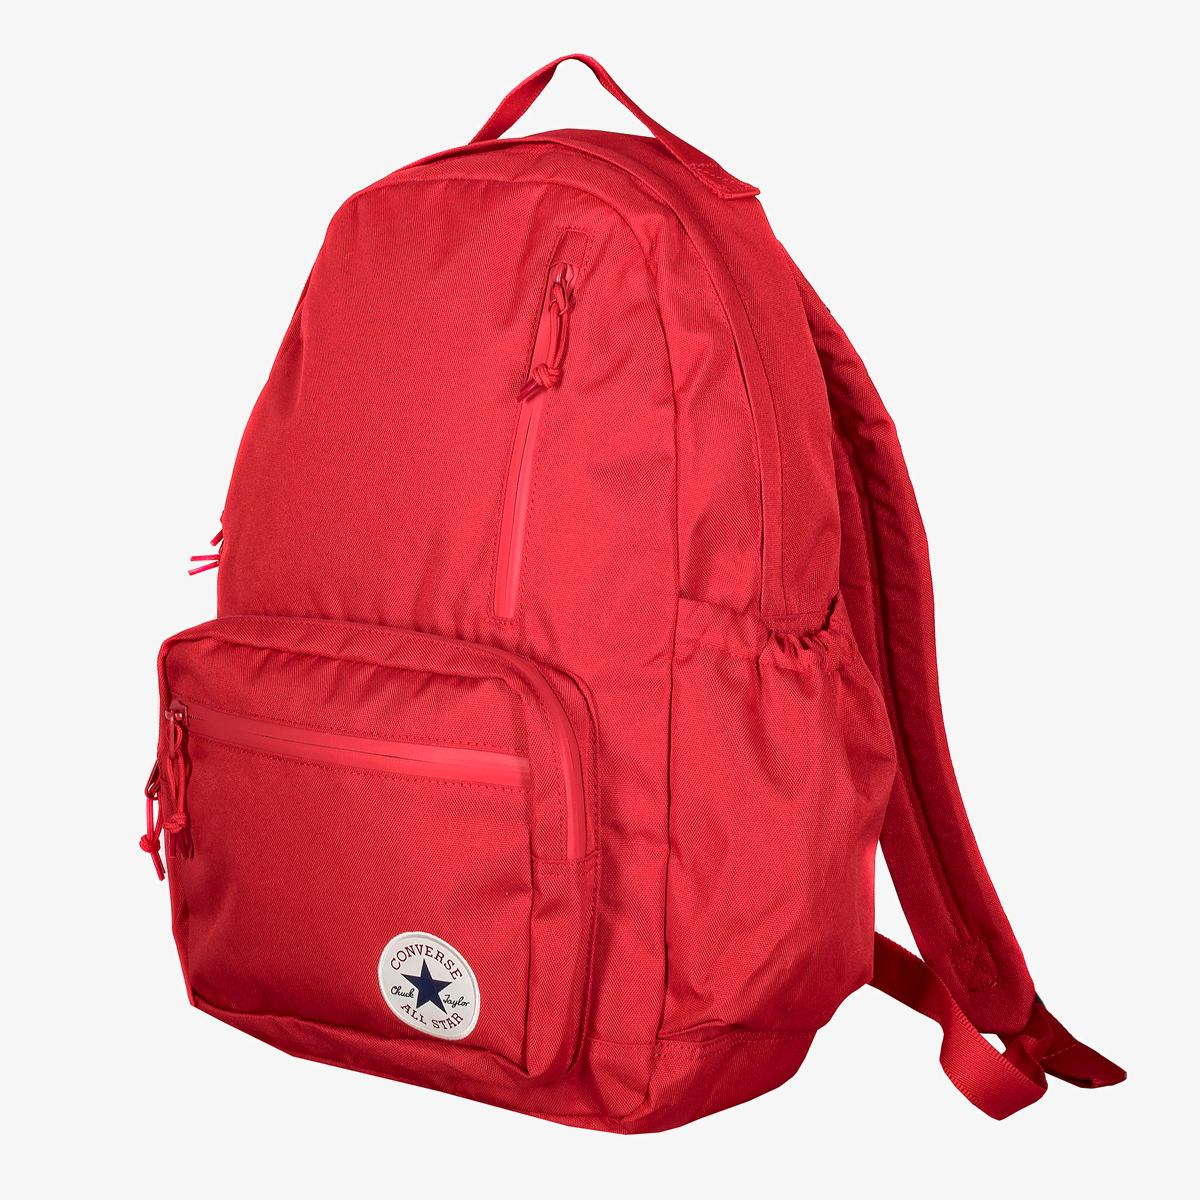 Рюкзак Converse GO BACKPACK ENAMEL RED/POMEGRANATE RED